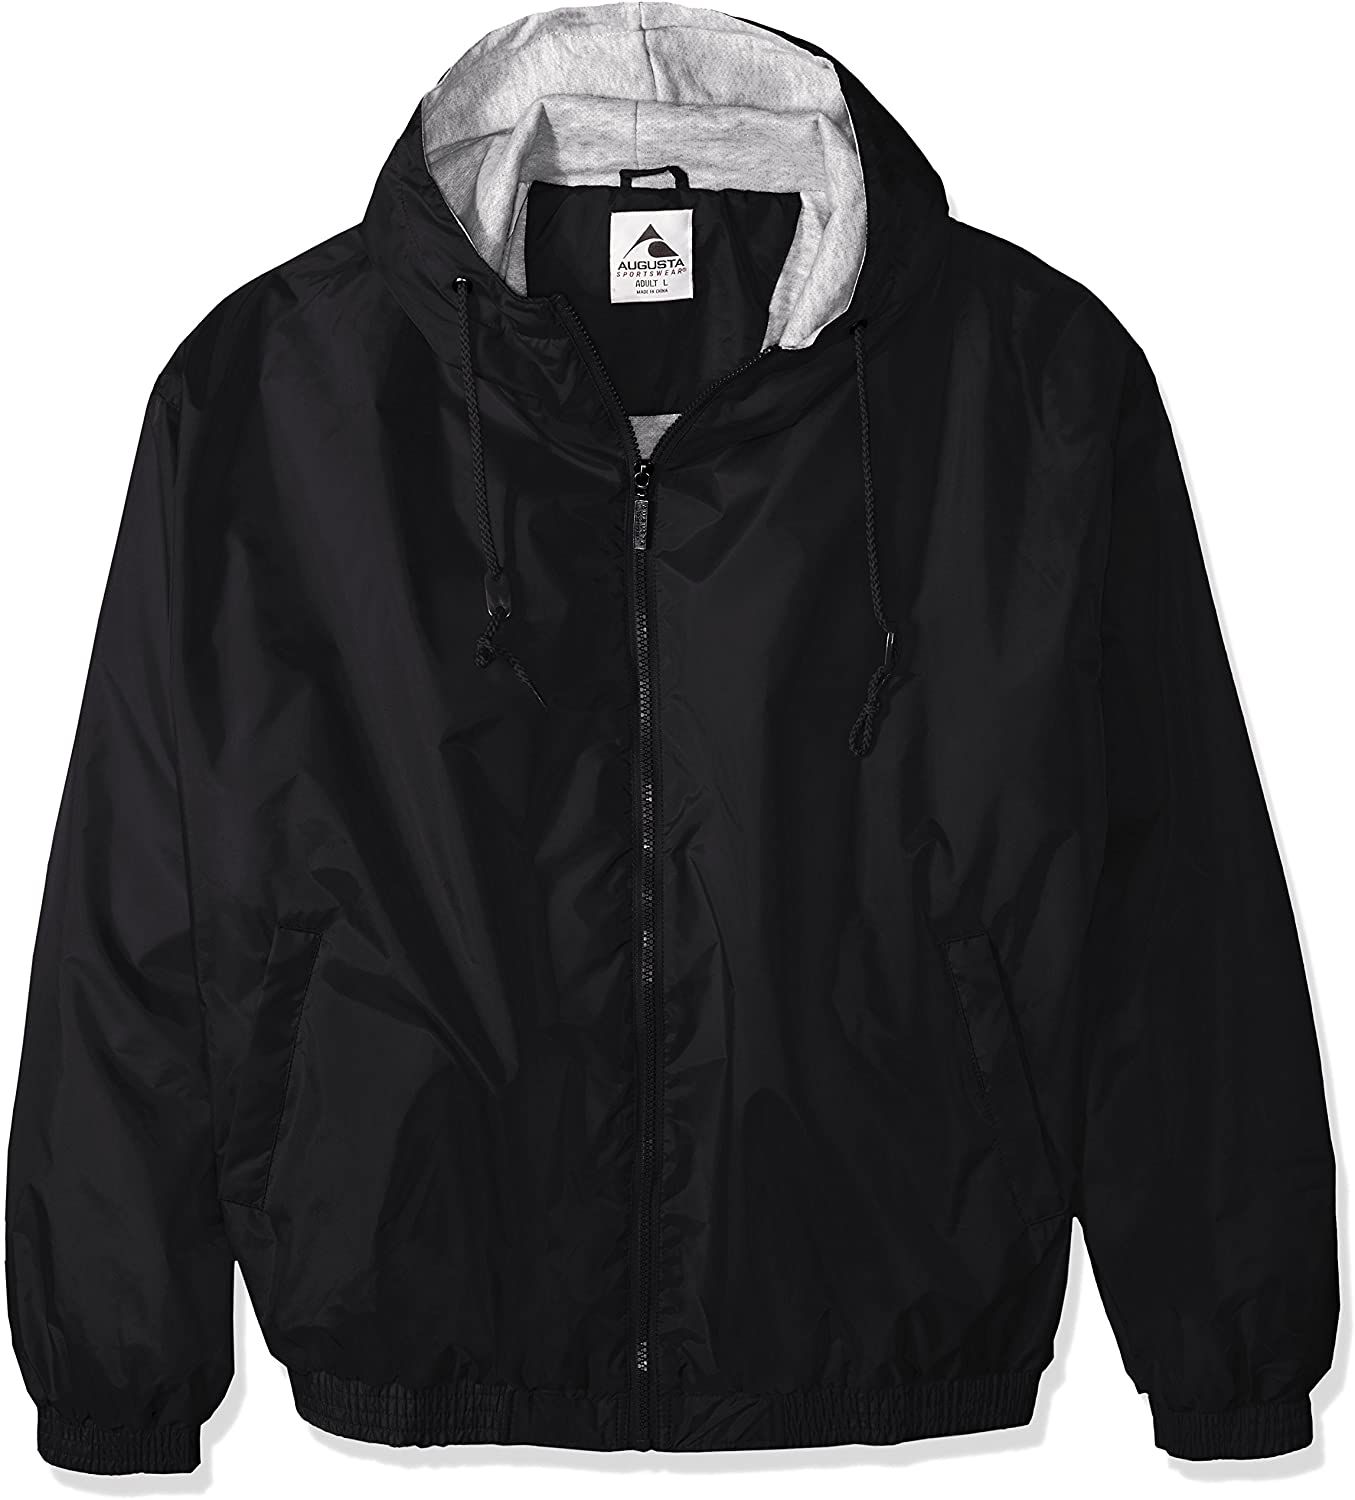 Augusta Sportswear Mens Hooded Taffeta Jacket//Fleece Lined